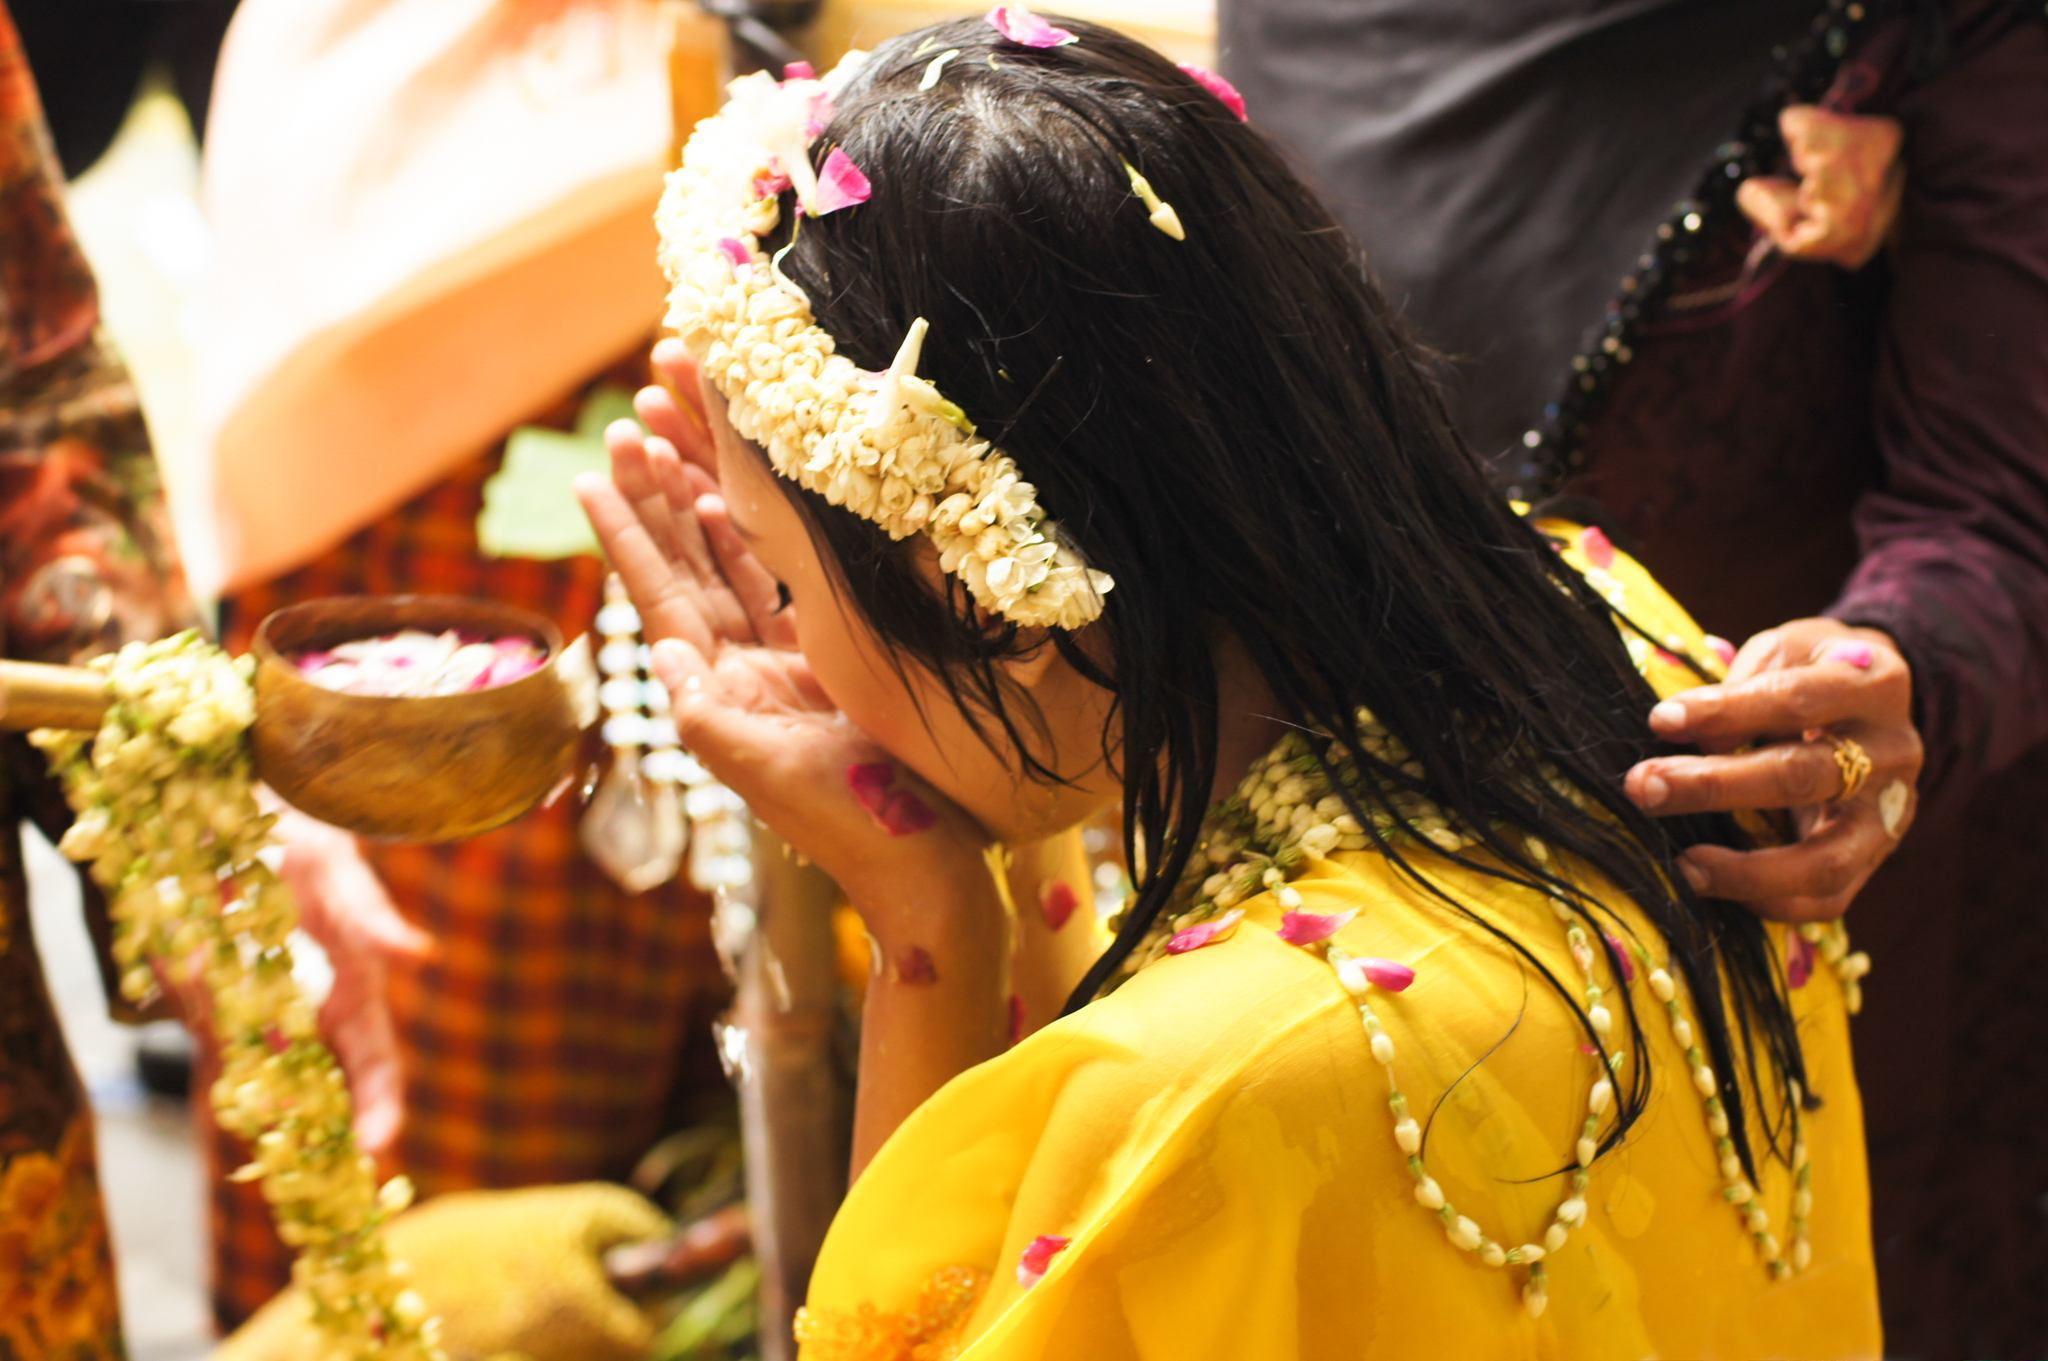 The bride-to-be is given a small amount of the water in the palms of her hands to drink before the rest of the ladle of water is showered over her head. Jessica was very honored to be invited to partake in this very intimate ceremony by the family.